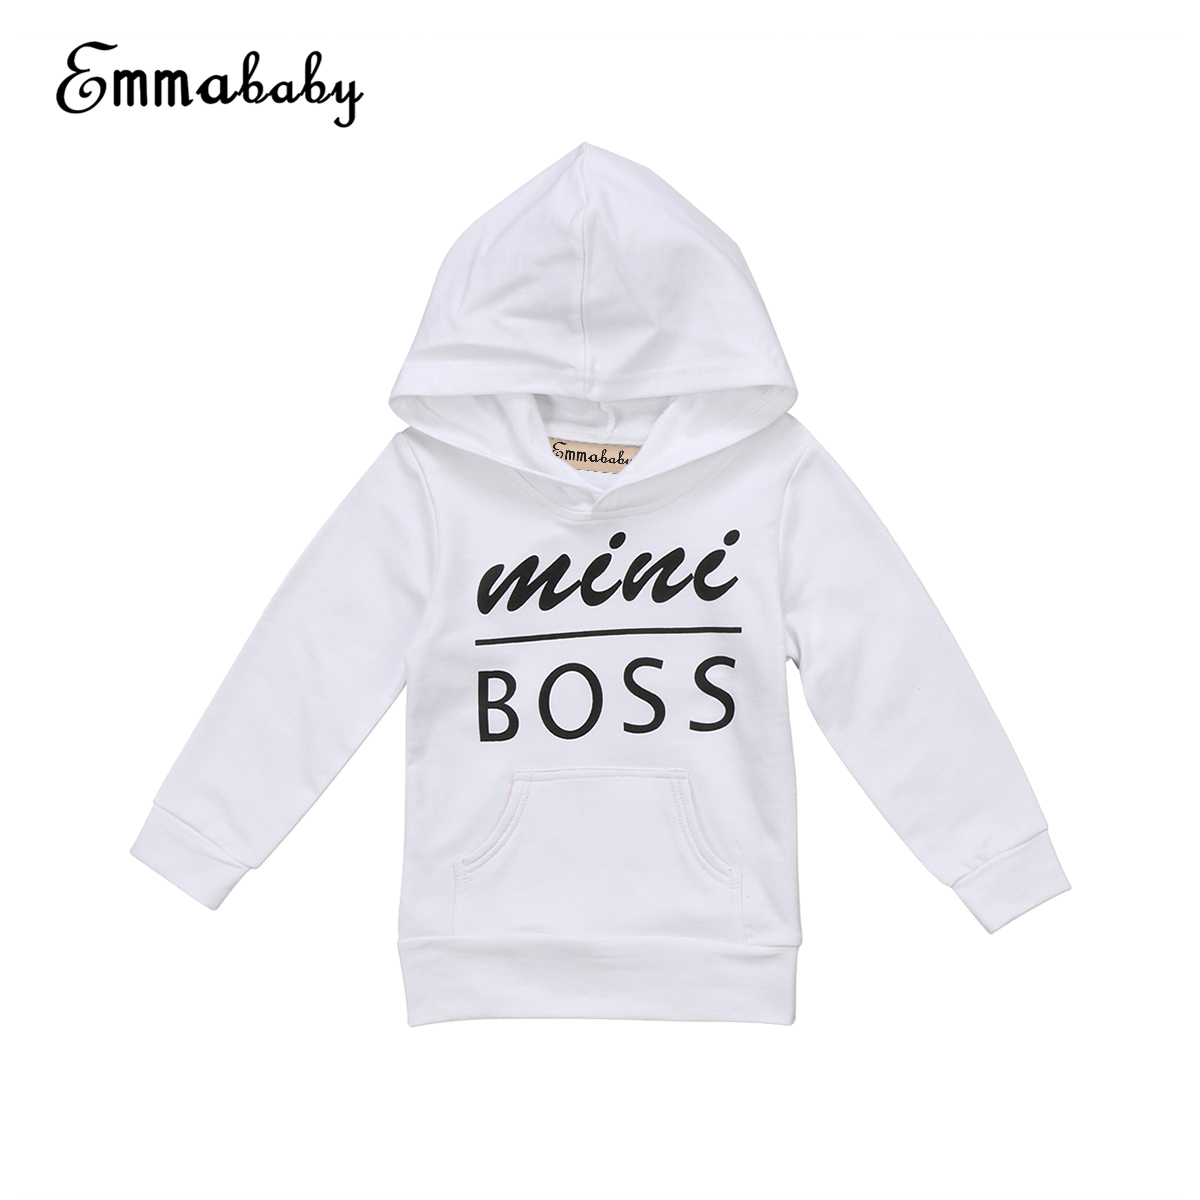 <font><b>Babies</b></font> Letter Hooded Pocket T-<font><b>shirt</b></font> Casual Toddler Newborn <font><b>Baby</b></font> Boy Girl Hoodie Tops Hooded Sweatshirt Outdoor 0-5Y Clothing image